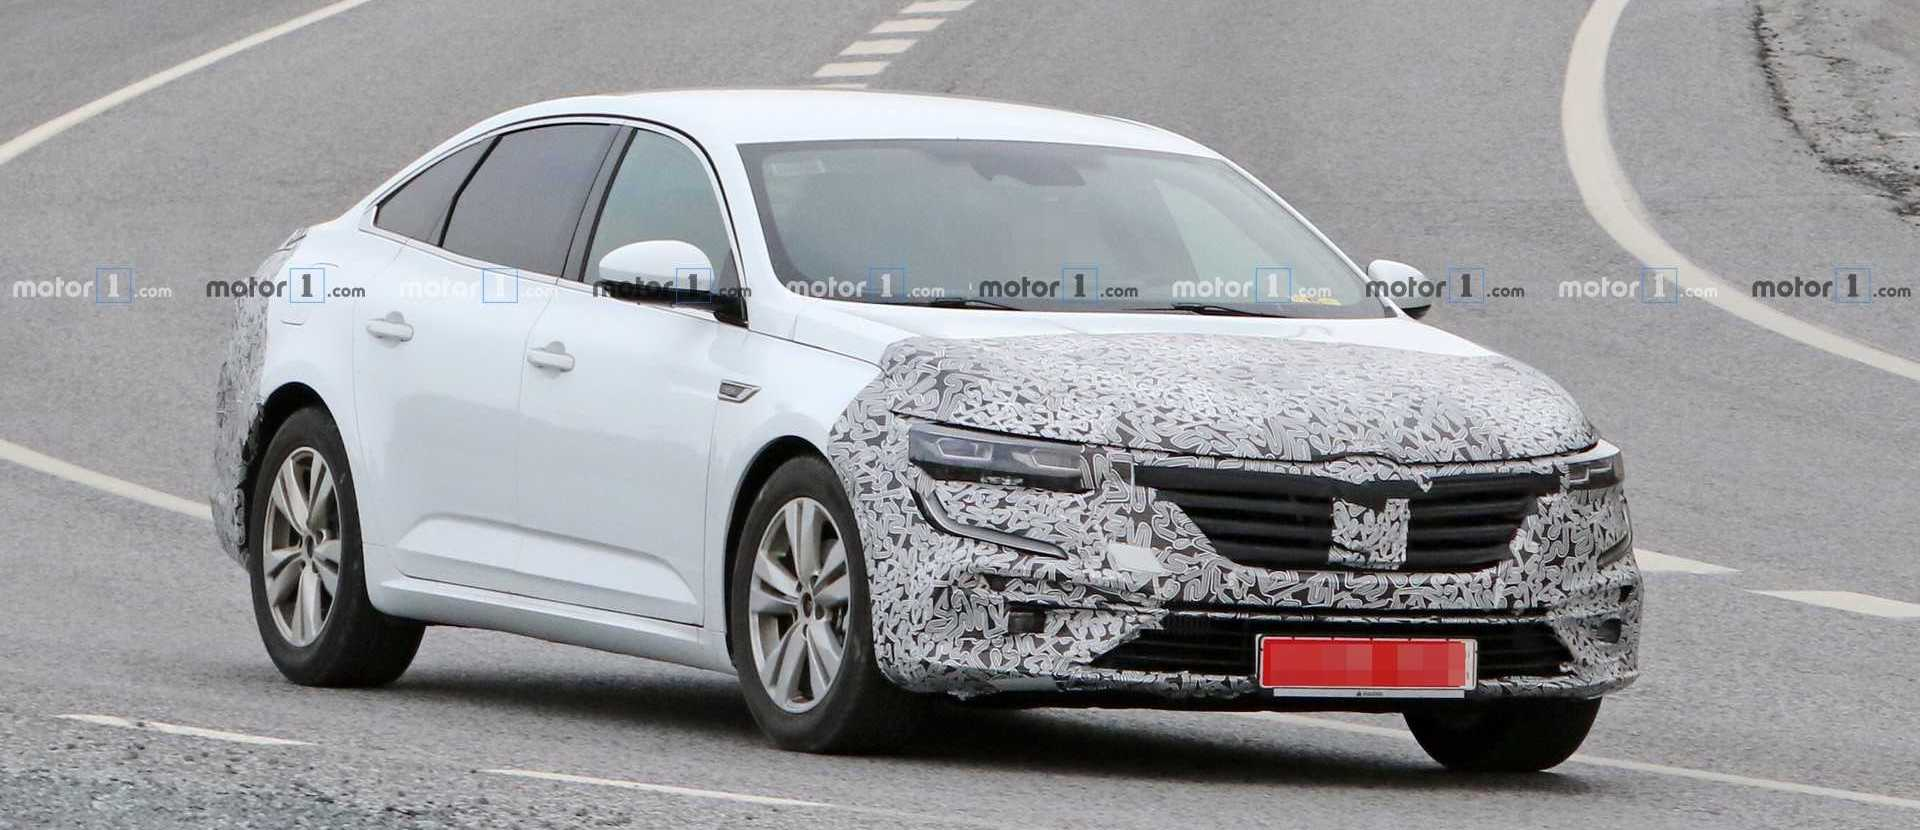 Renault Talisman Spied Getting Ready For Minor Refresh